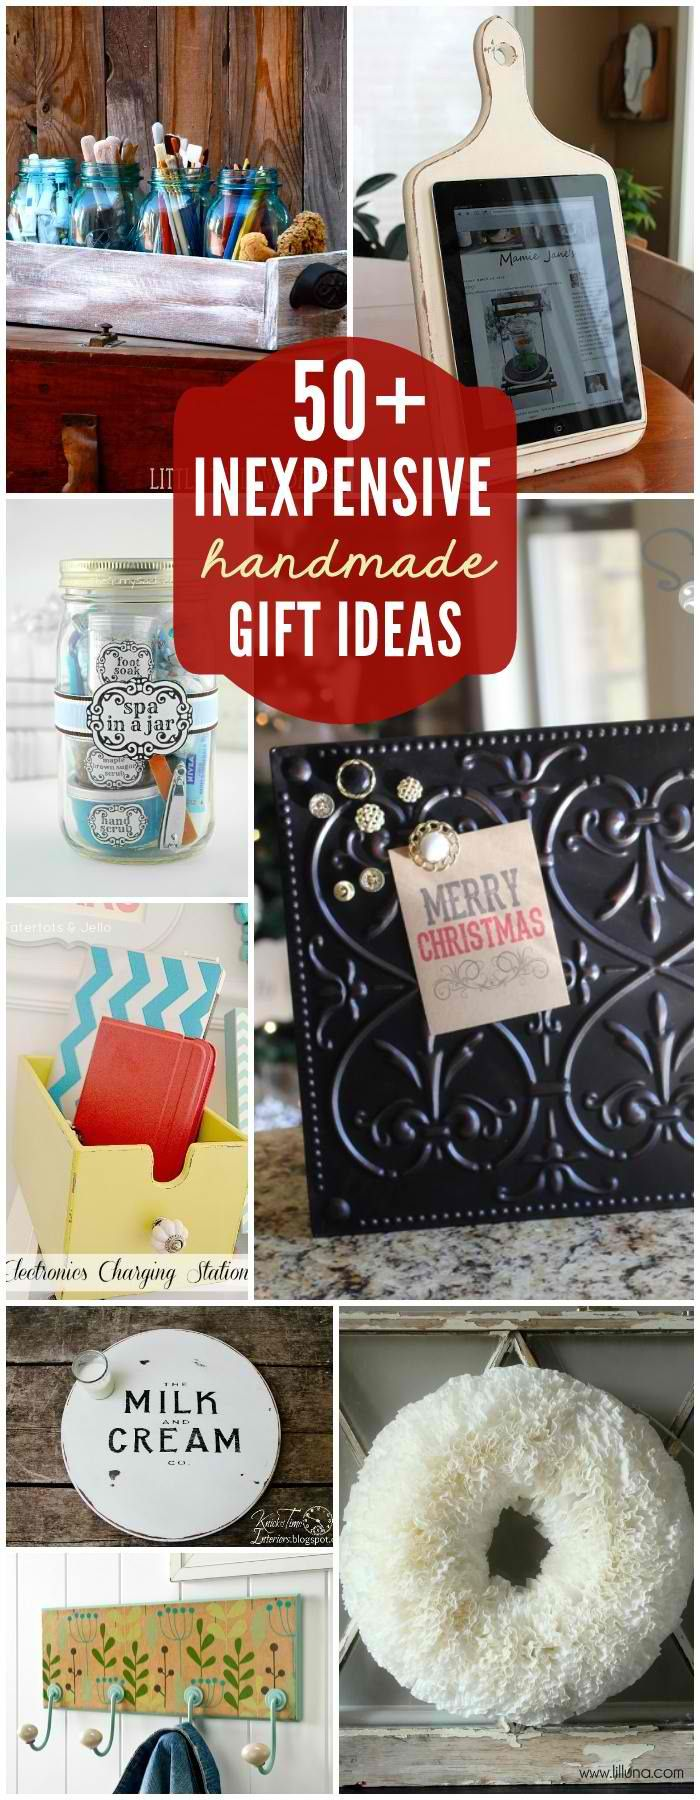 best gifts for everyone d images on pinterest